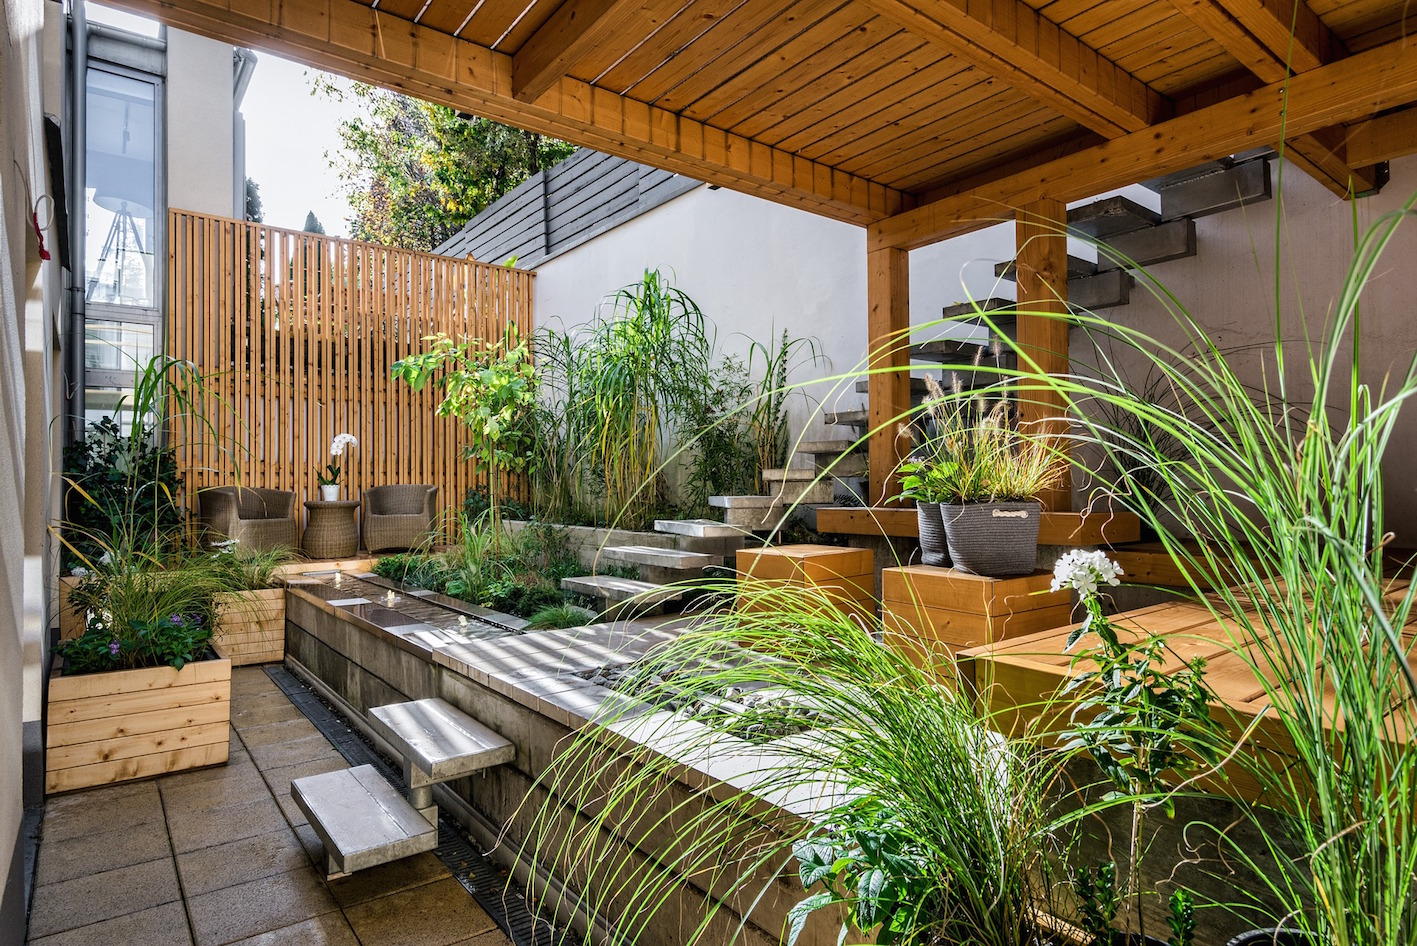 urban-abstract-garden-with-steps-and-plants